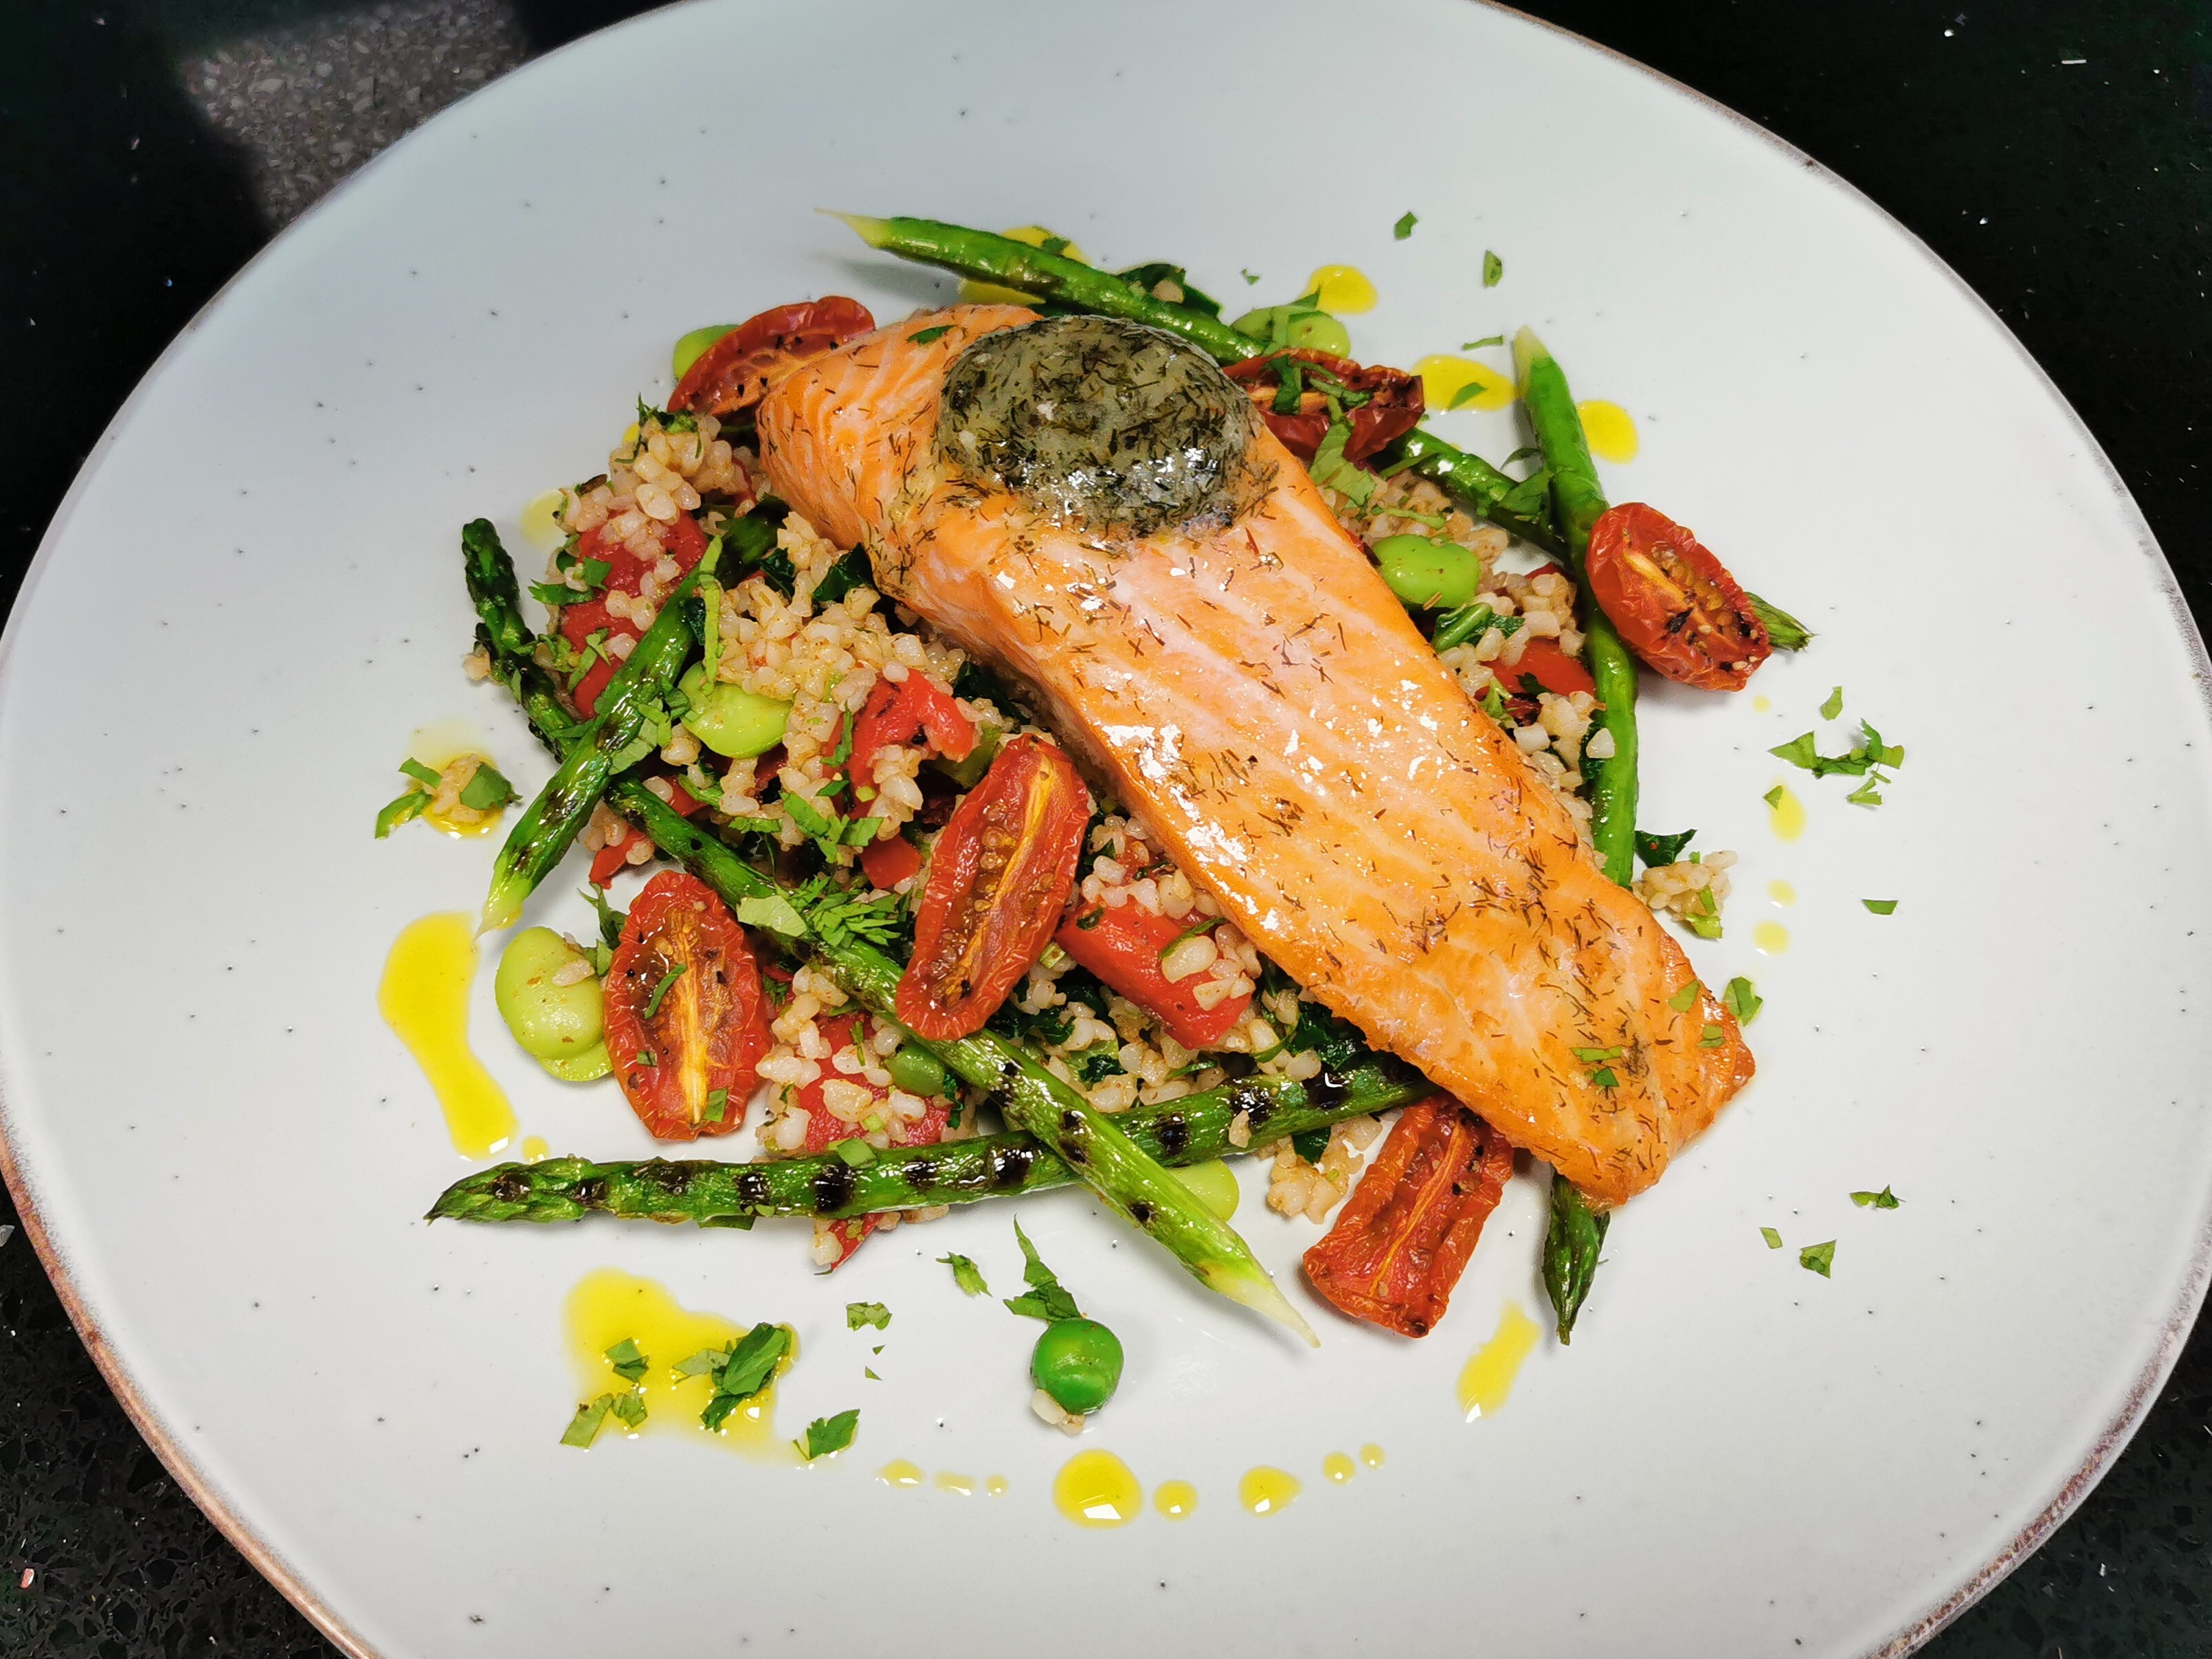 Trout with Lemon & Dill Butter with Bulgur Wheat Salad